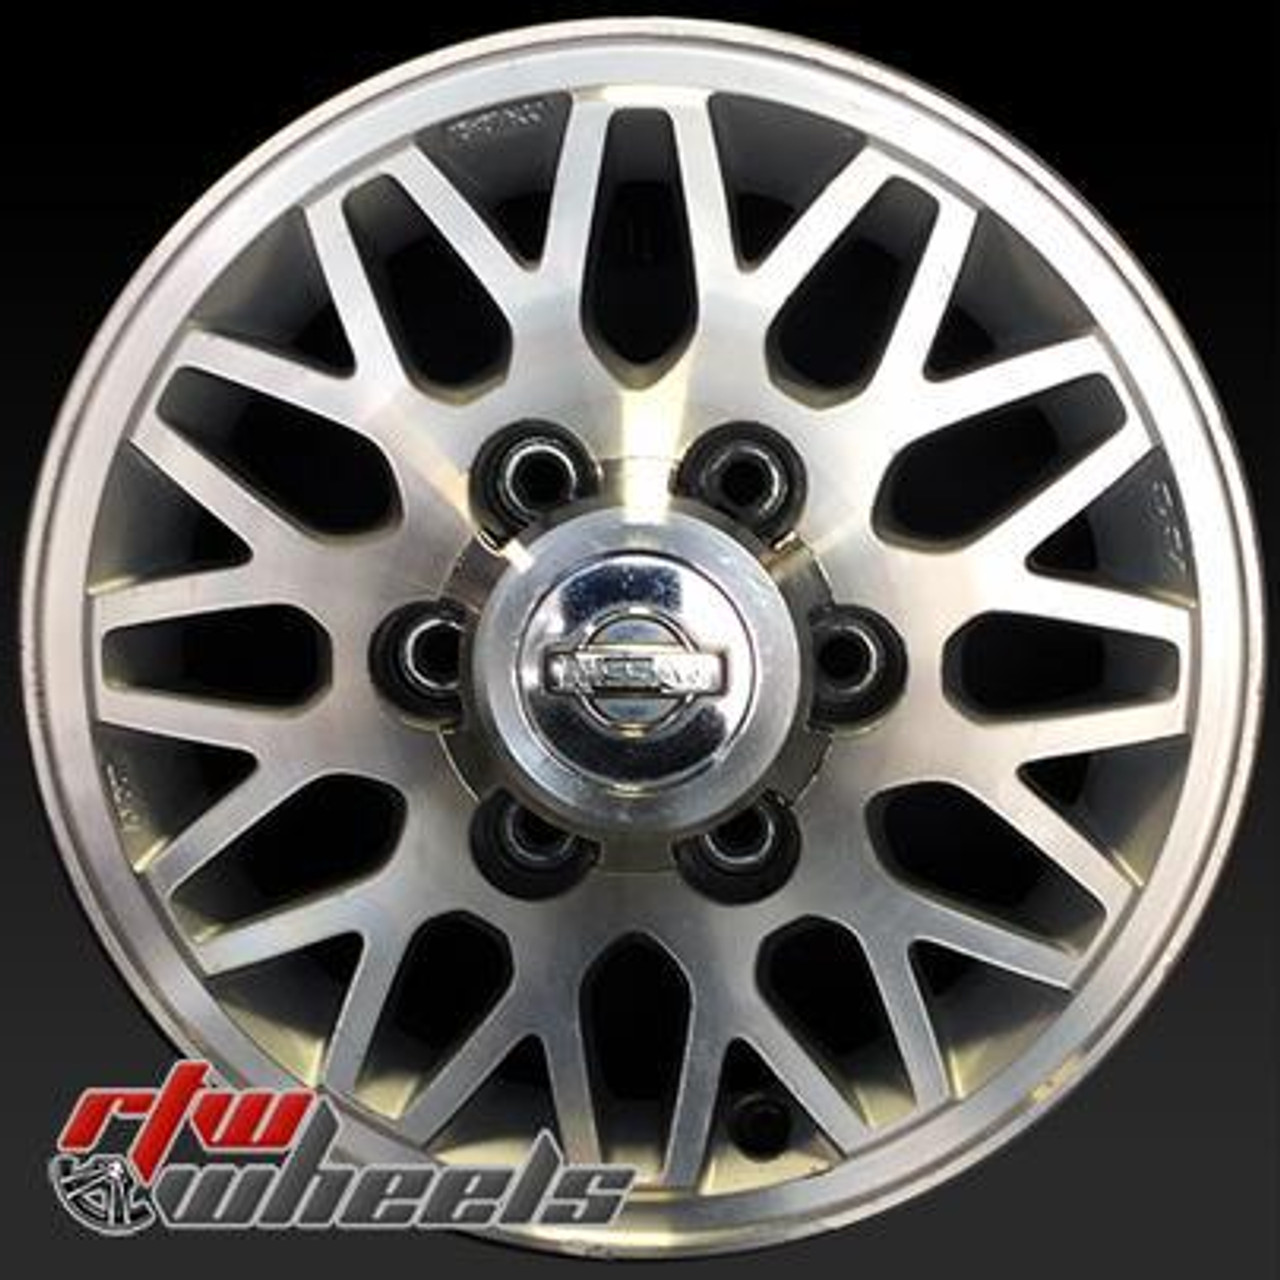 15 inch nissan pathfinder oem wheels 62343 part 403000w426 [ 1280 x 1280 Pixel ]